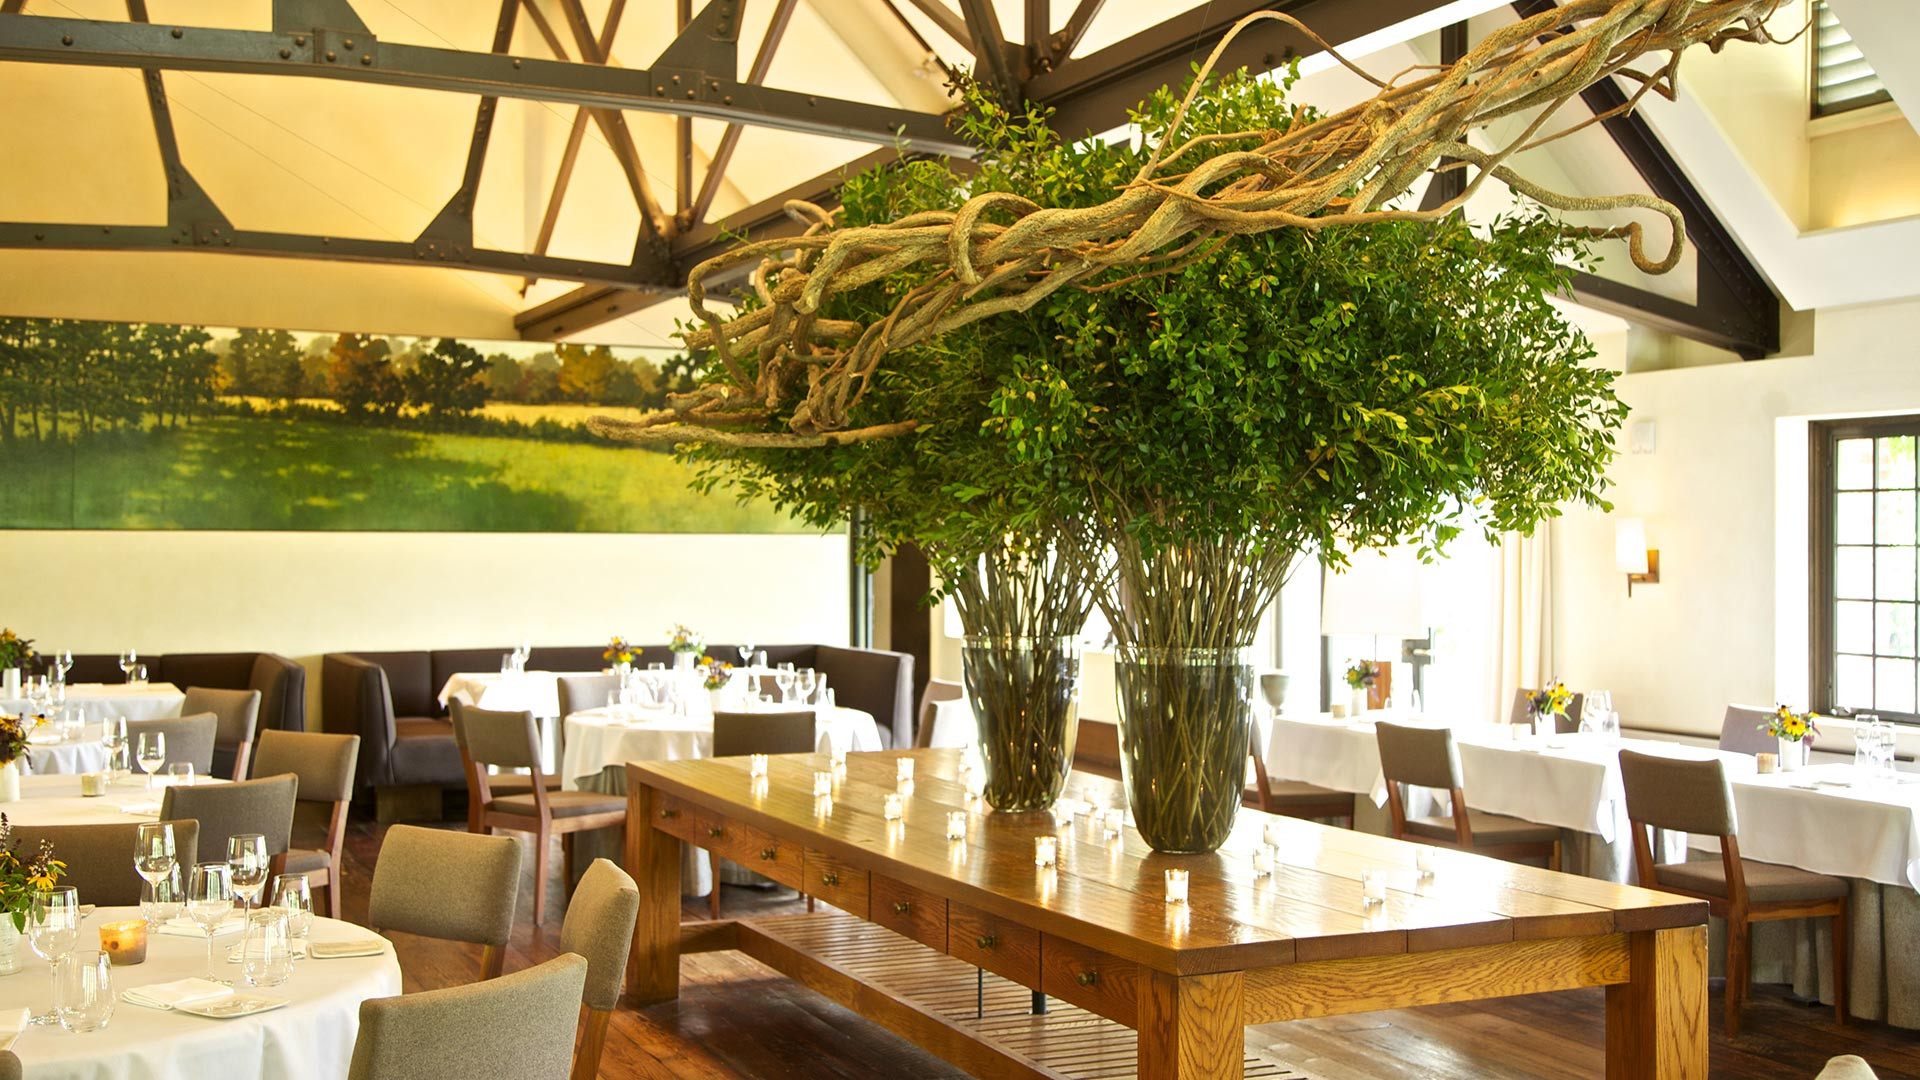 Dan Barber's acclaimed farm-to-table restaurant Blue Hill at Stone Barns. Photography by Daniel Krieger.